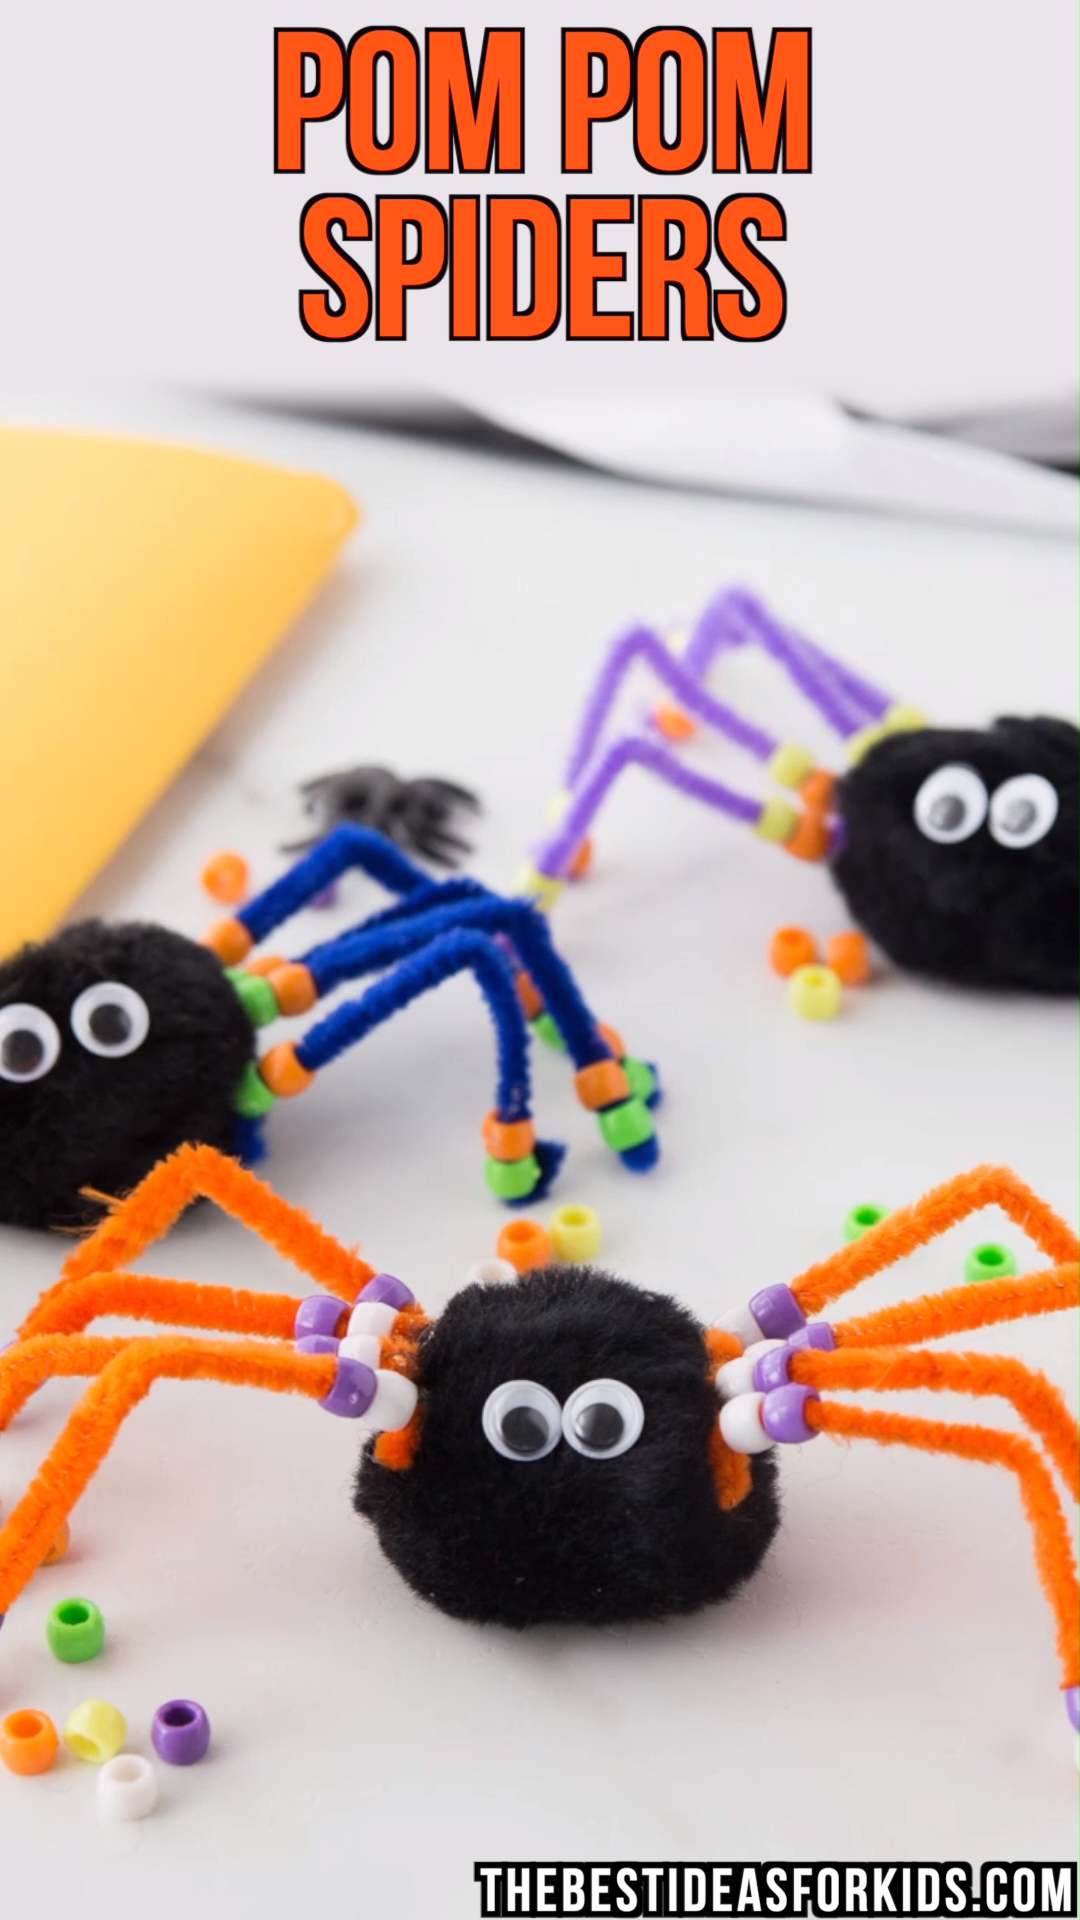 POM POM SPIDERS #halloweencraftsfortoddlers